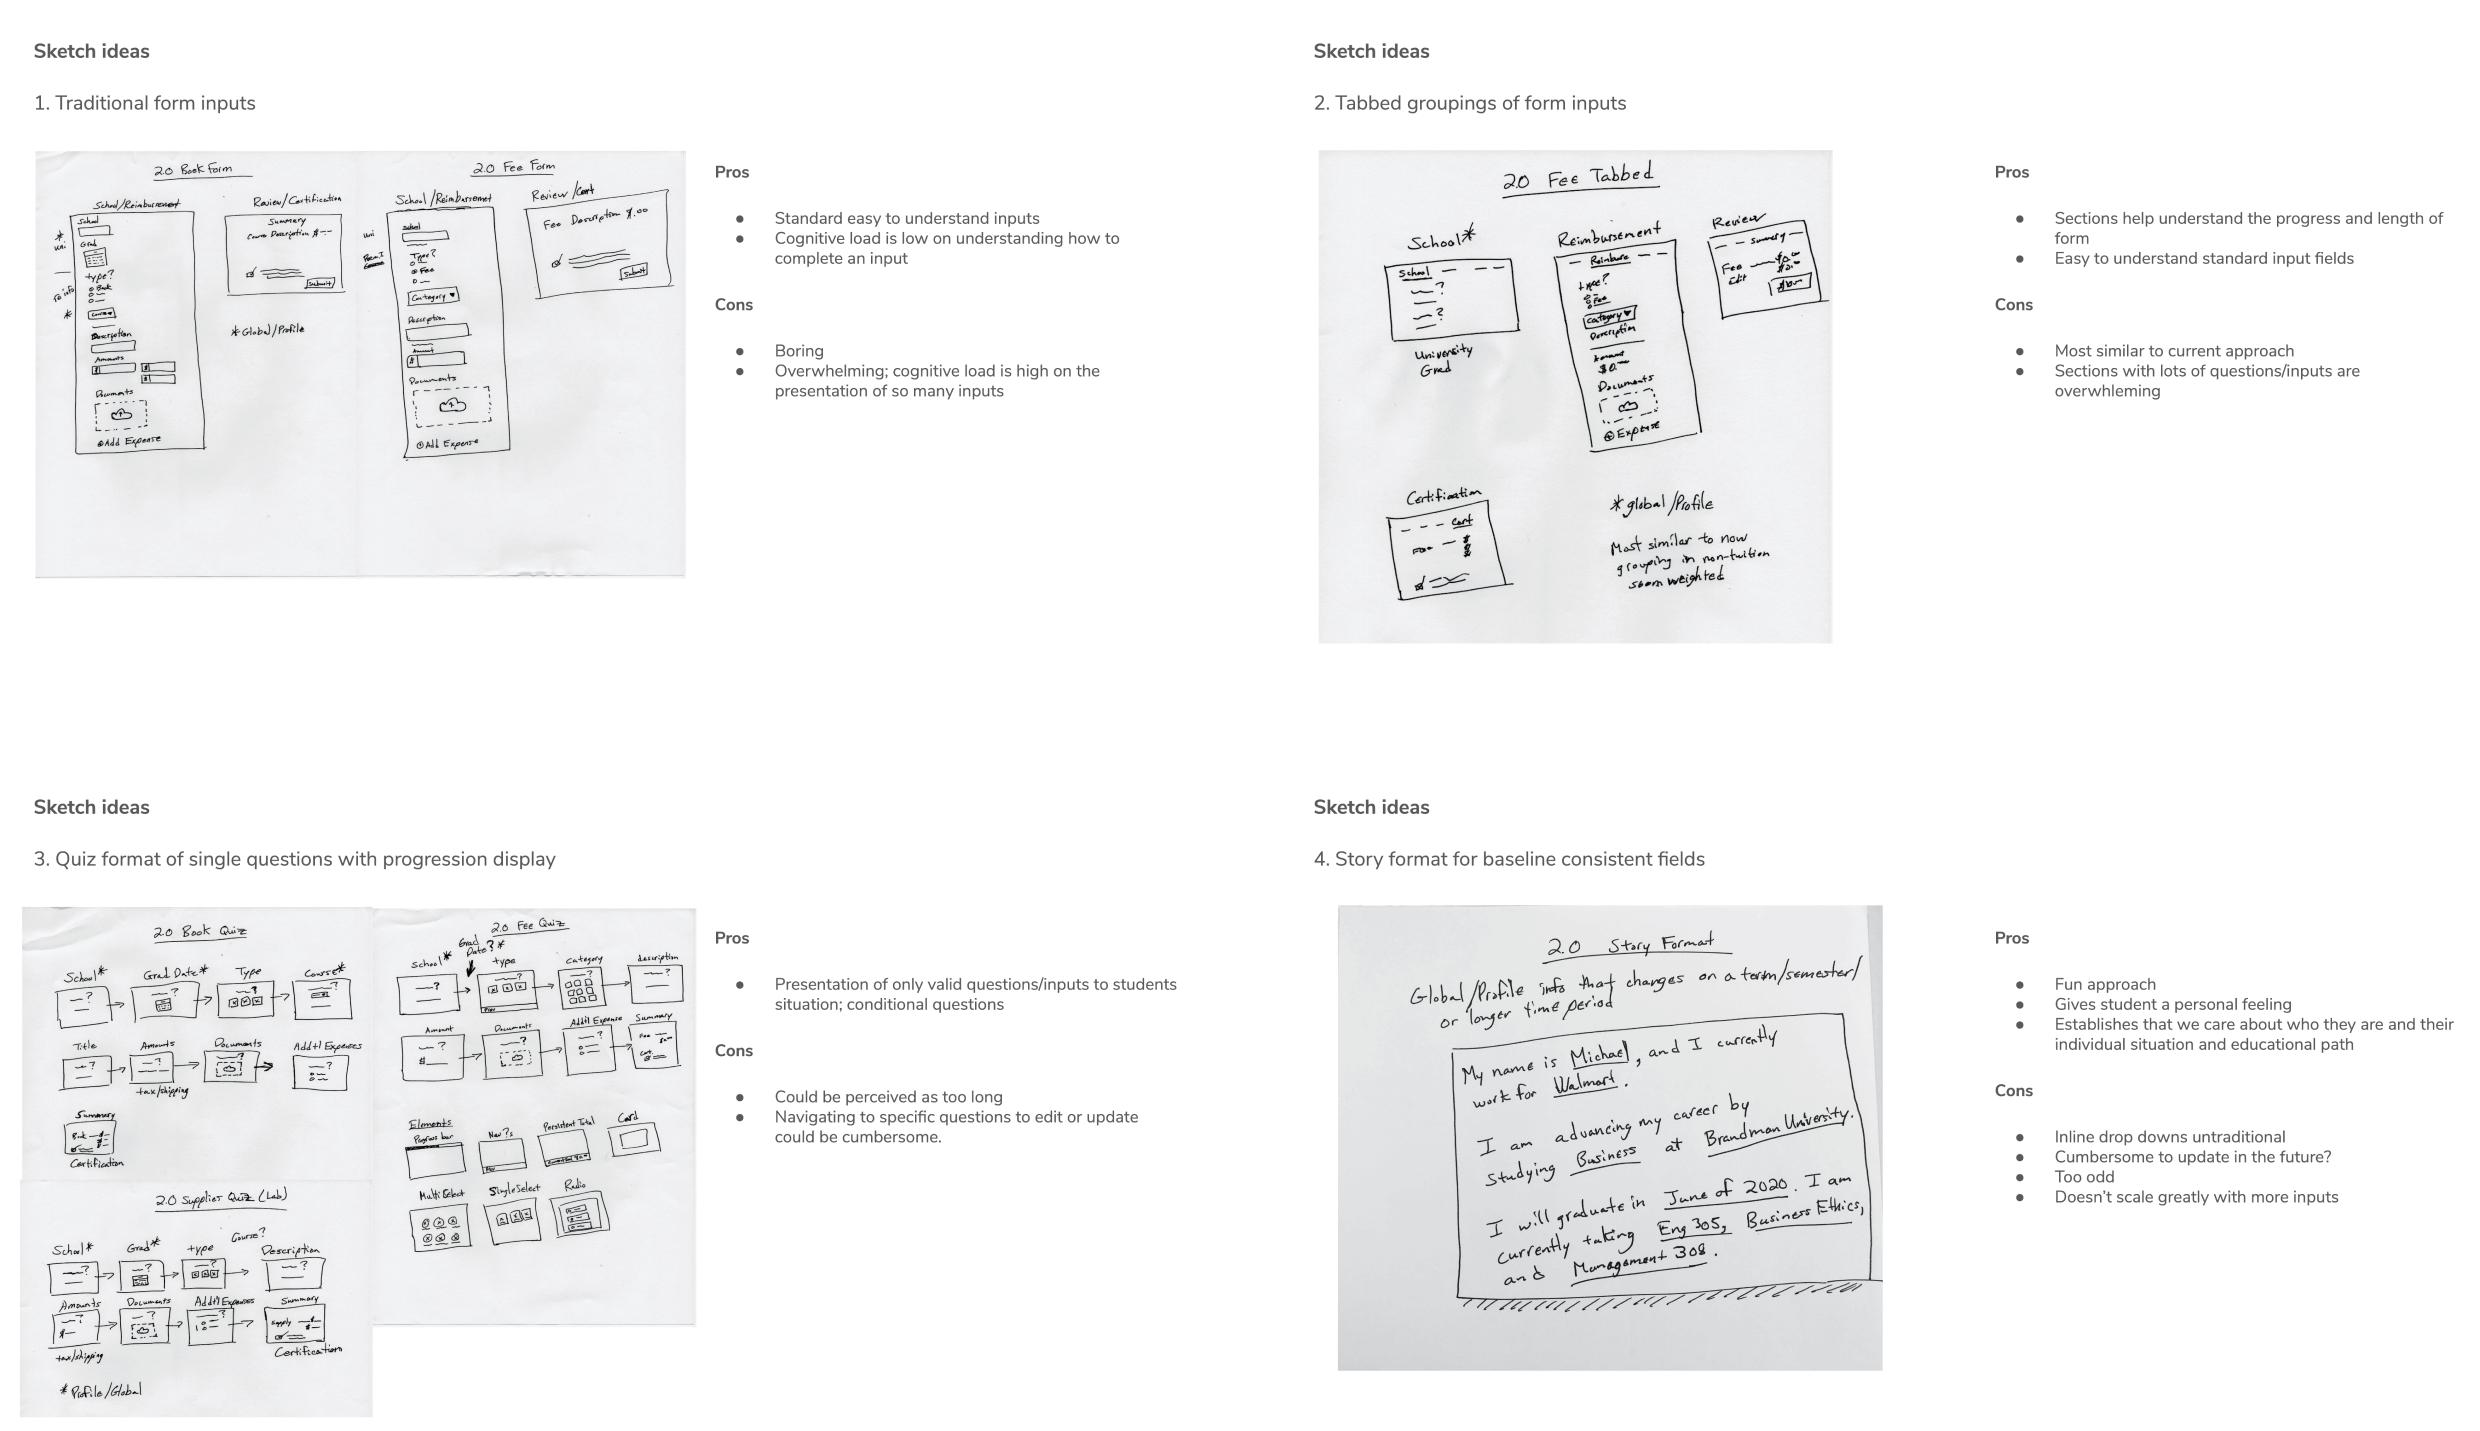 ge_sketches